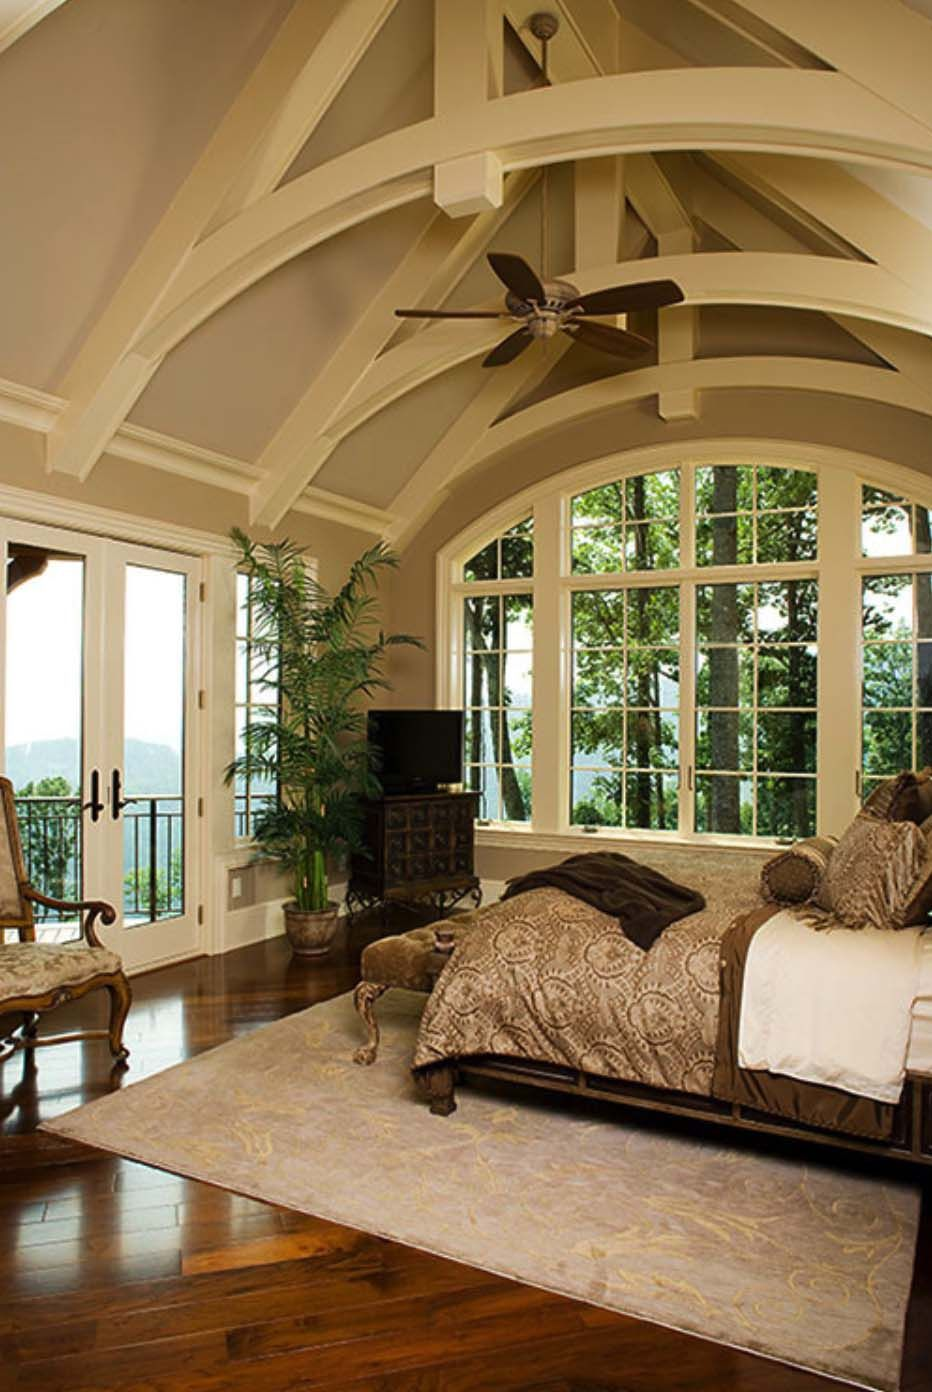 33 Stunning Master Bedroom Retreats With Vaulted Ceilings Home My Dream Home House